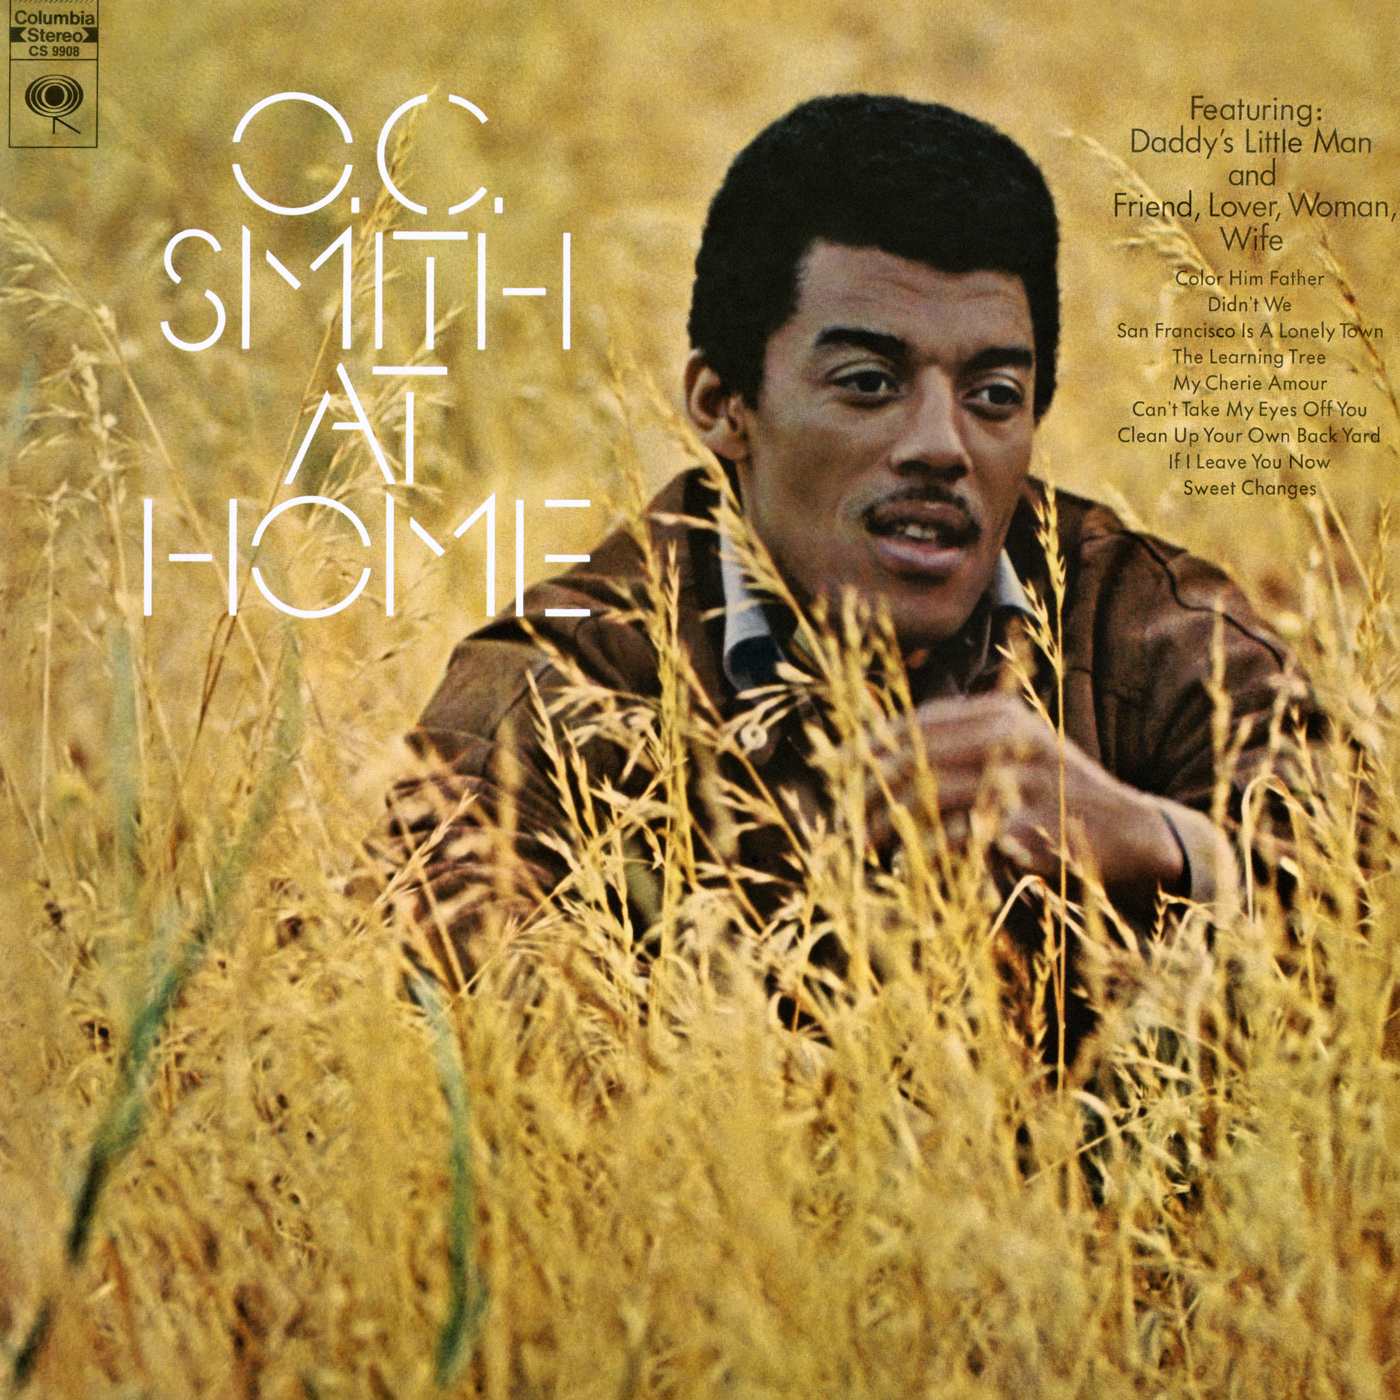 O.C. Smith At Home - O.C. Smith